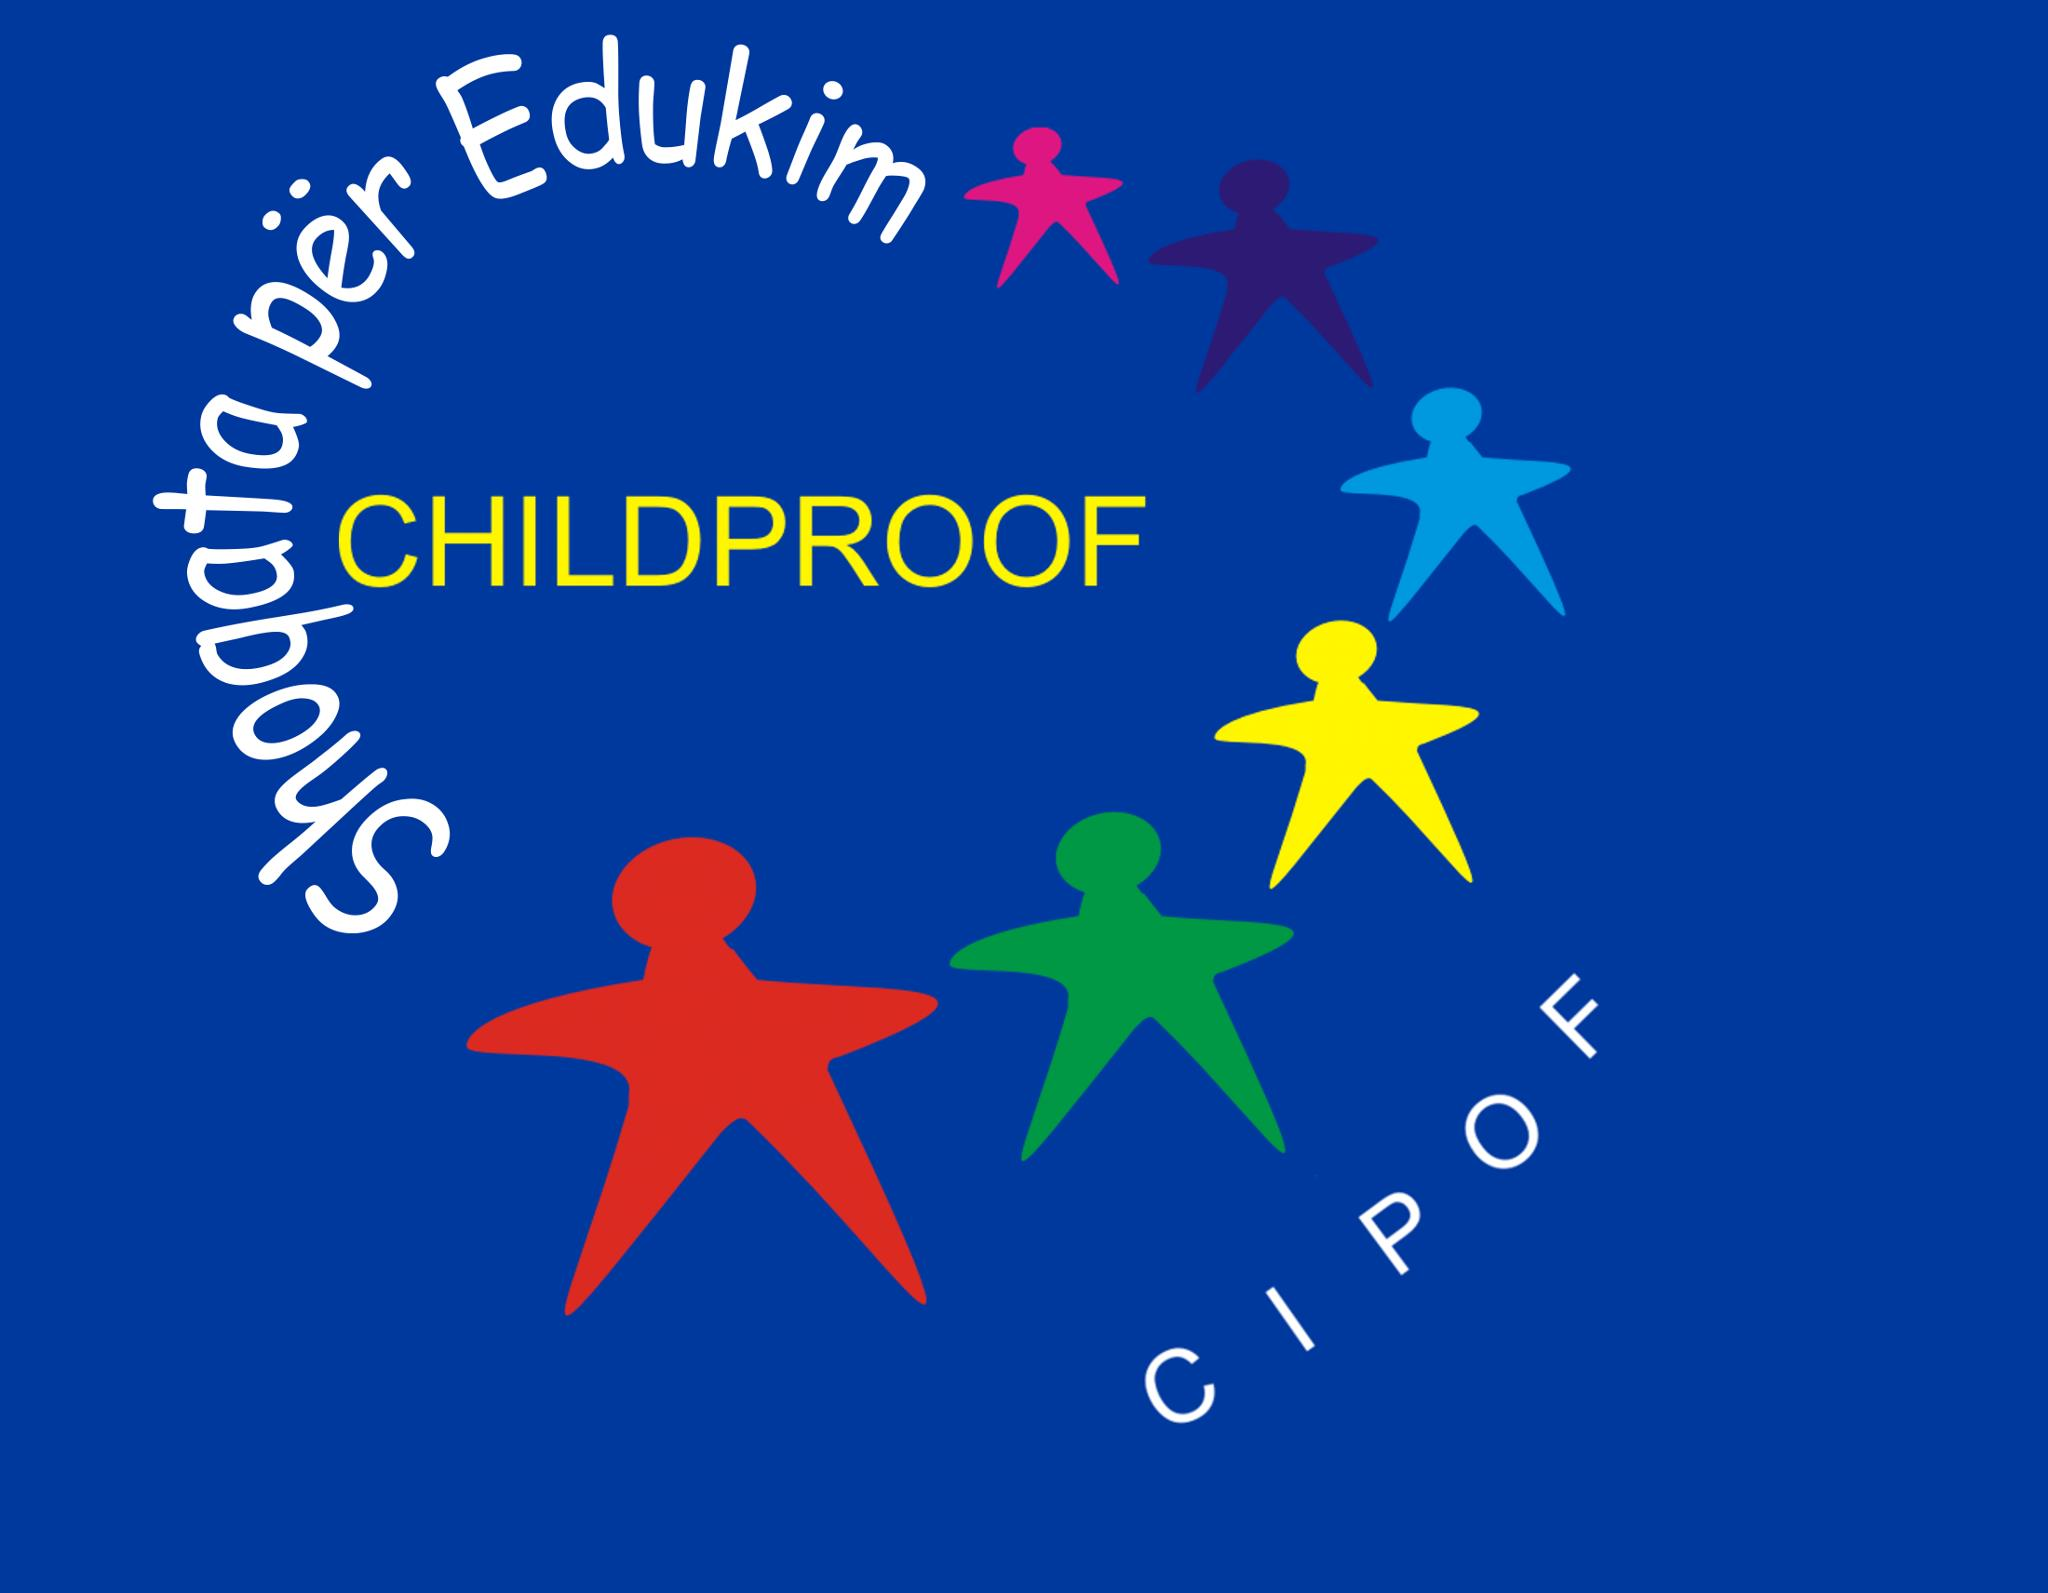 Childproof NGO